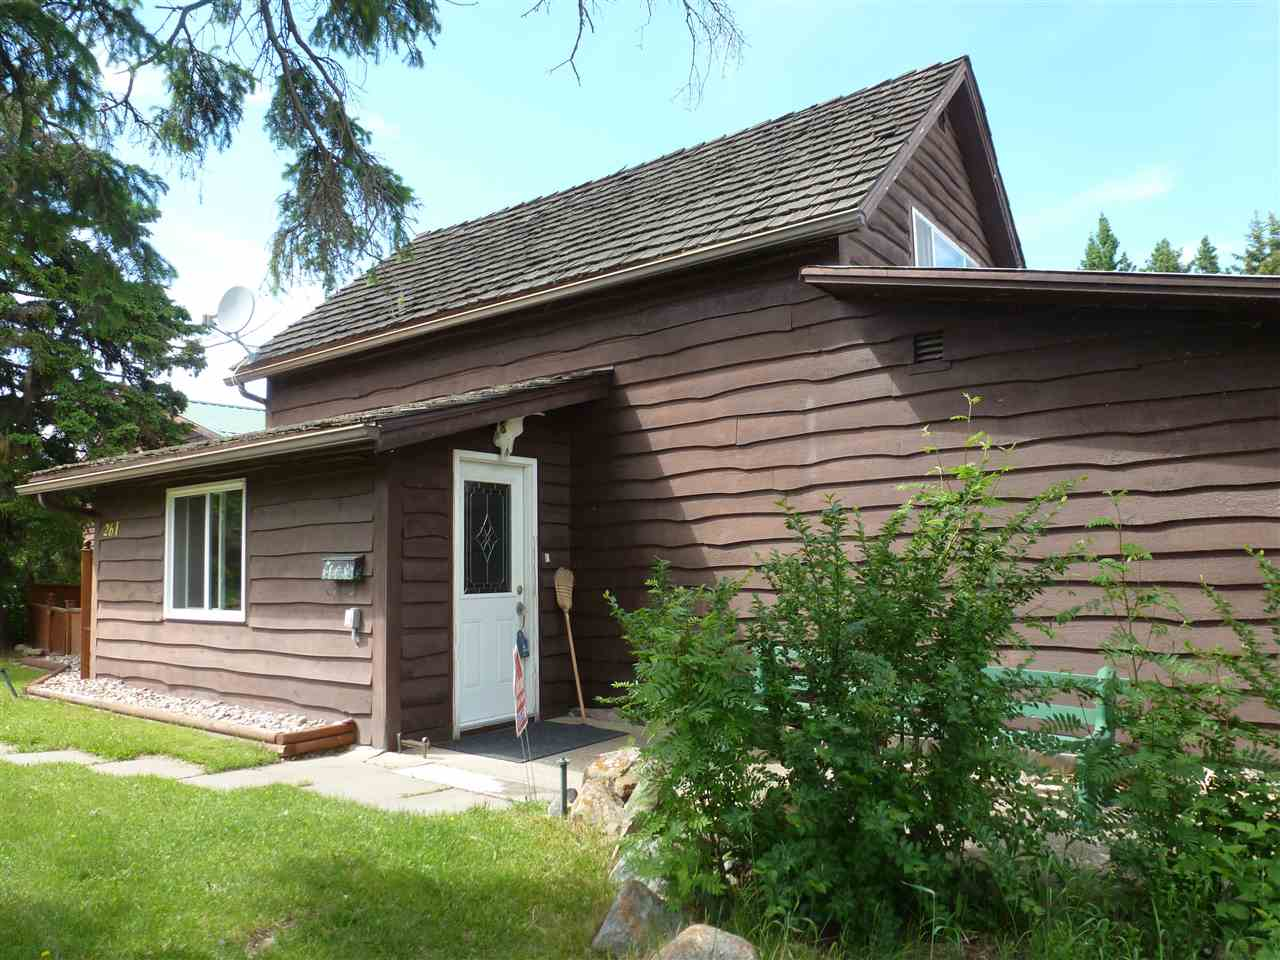 *ESTATE SALE* $299,900 - Must Sell this charming Character Semi-Bungalow House built in 1912 overlooking NorthEast shores of South Cooking Lake was built. Huge 2-Storey Garage w/Artist's Studio on upper level, was added some time later. A total of 1502 Sq Ft of Living Space on the Main and Upper levels, plus partial Basement which houses the Utility Room and Storage area. The main floor features a spacious and open Living Room with a majestic Natural Gas Fireplace and Dining area overlooking the Lake, all with Hardwood flooring throughout. In addition, there is a Galley Kitchen, Laundry Room, Master Bedroom and 4-piece Bathroom. The Upper floor is currently one big Bedroom with room for 5 or 6 beds. The Double Detached Garage is 28' x 28' and is 2 storeys high with the Studio upstairs having its own furnace. The property itself is high on a hill and provides a glorious view of the Lake. It has its own Drilled Well and comes with Water Treatment Equipment. This Charmer must be seen to be fully appreciated.